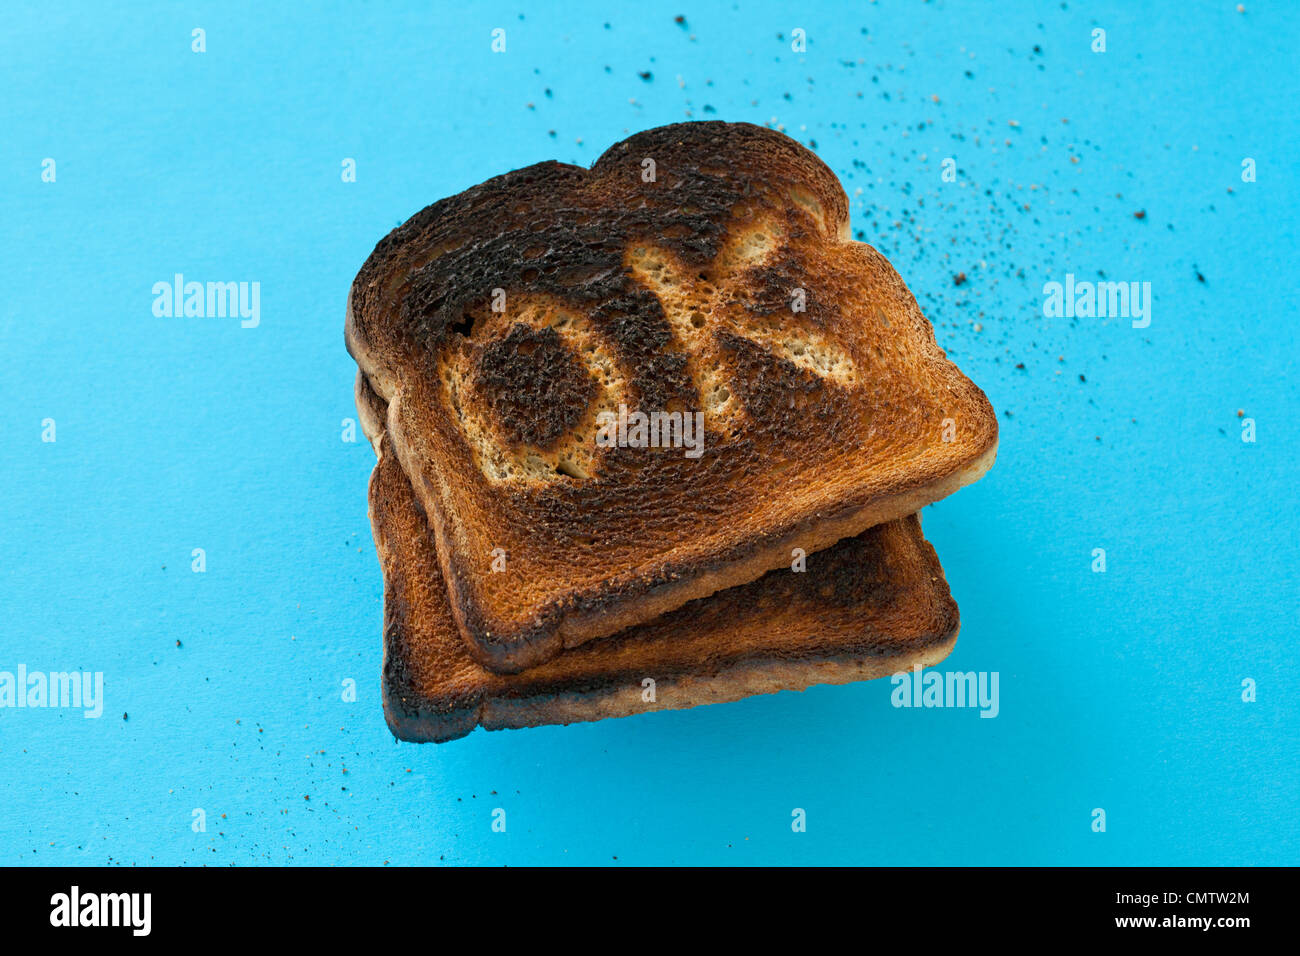 burnt toast on blue with OK scraped into it. - Stock Image